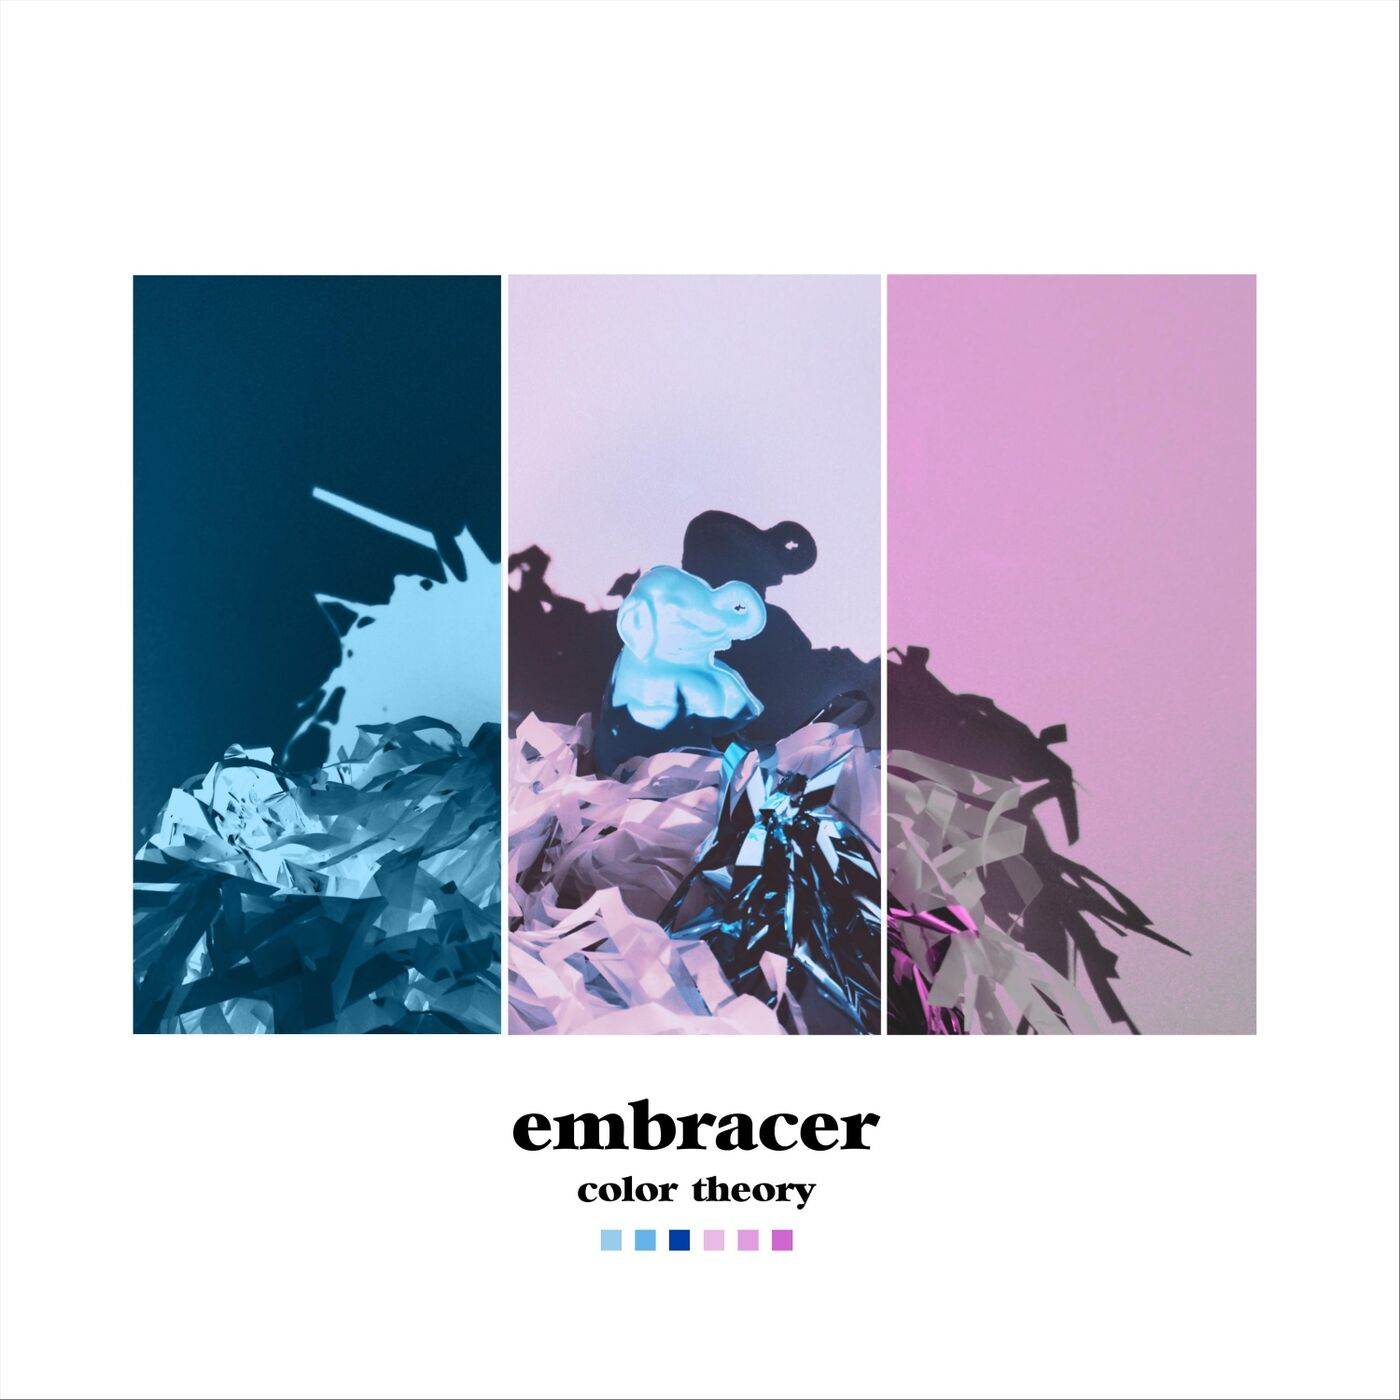 Embracer - Color Theory (2019)